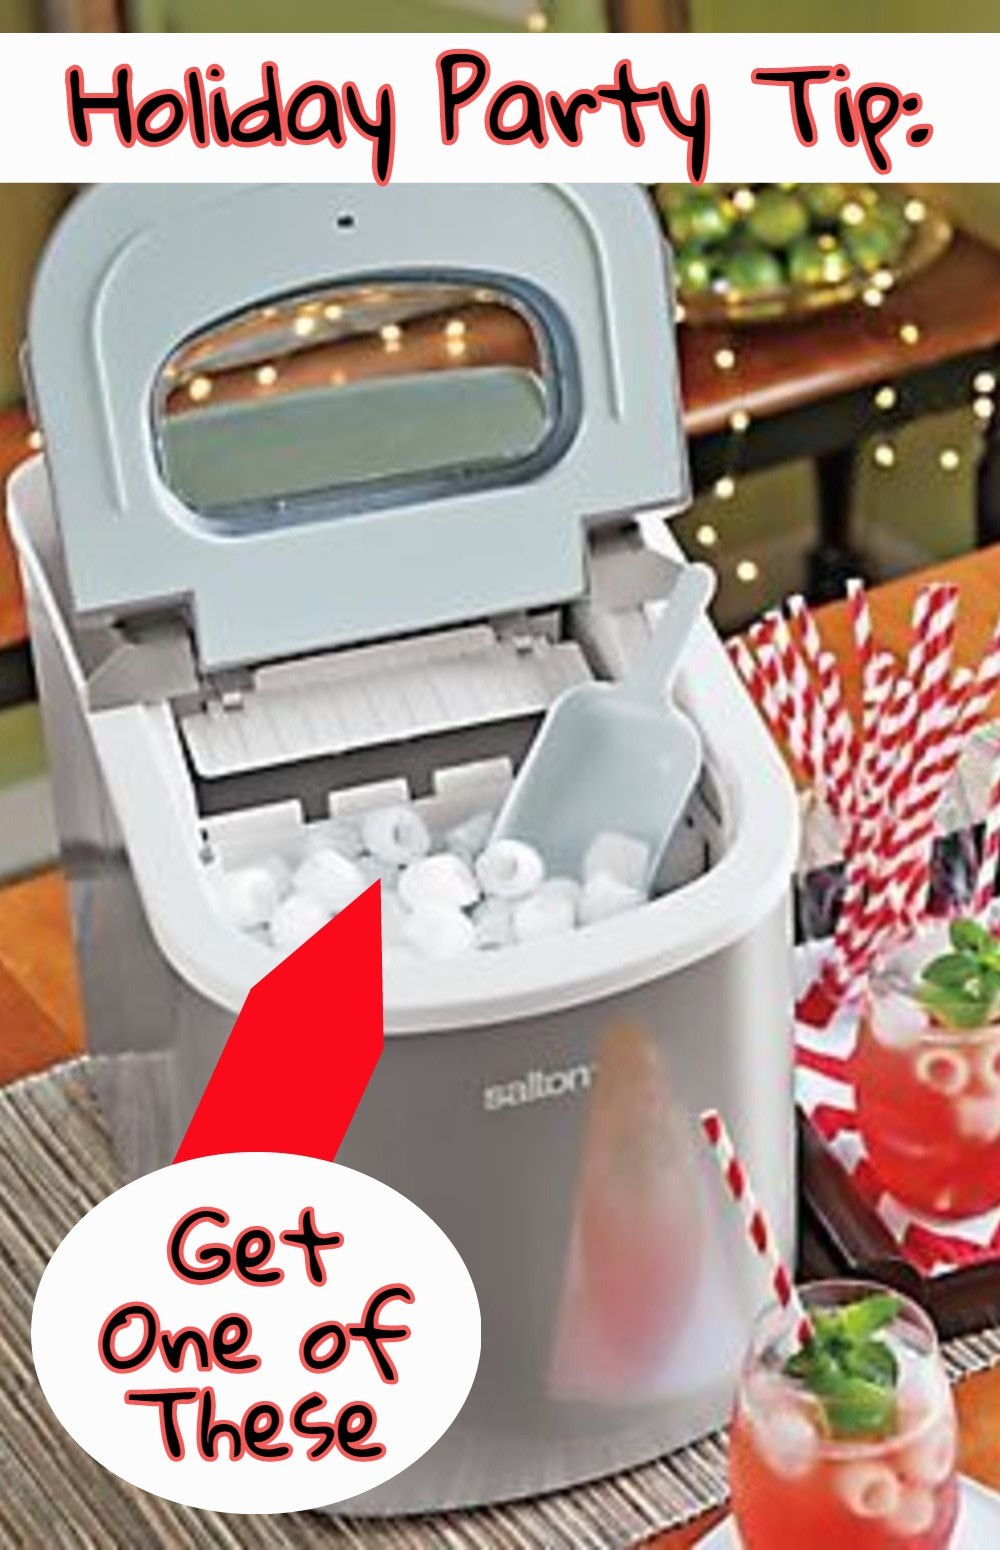 Countertop Ice Maker Consumer Reports : PORTABLE ICE MAKER! Seriously, a little countertop ice maker machine ...